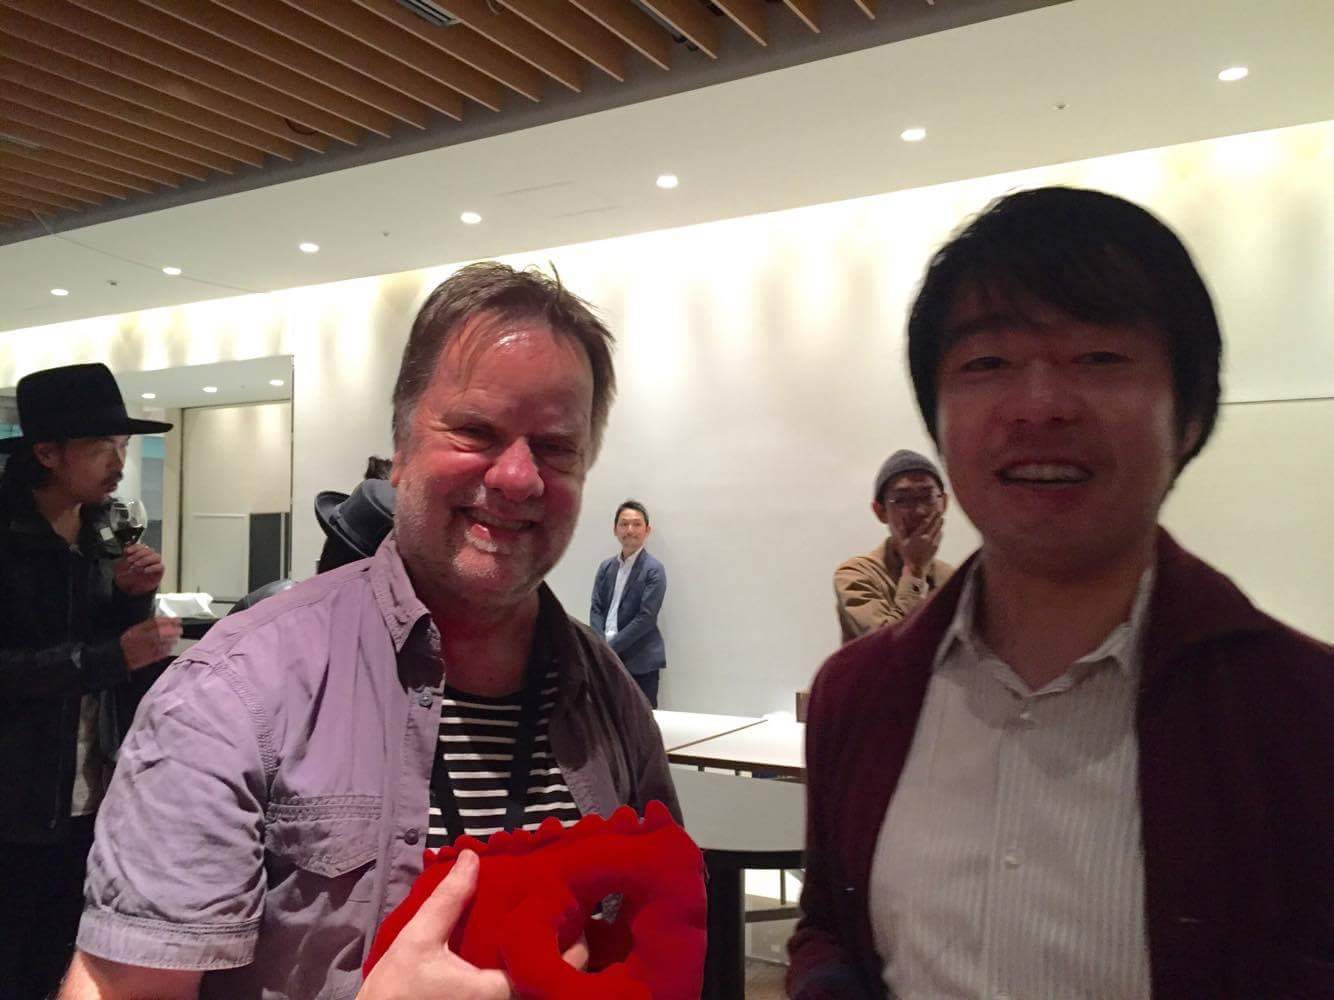 Freddy Olsson from Goteborg Film Festival and his red dragon at Tokyo Cinema Night. Freddy, please choose Akiyo's film!